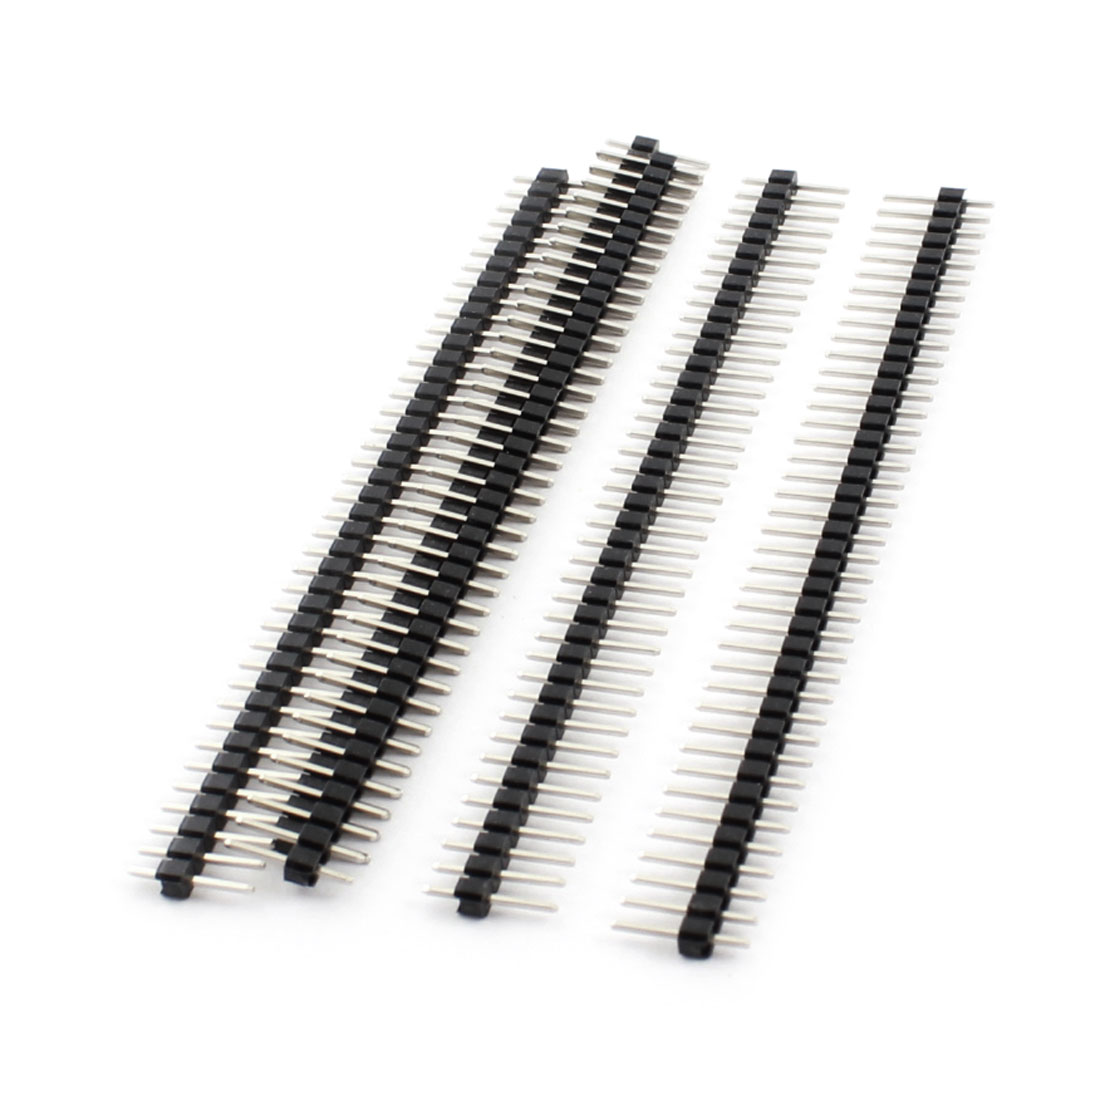 5Pcs 40 Pin 2.54mm Pitch Straight Single Row PCB Board Pin Headers